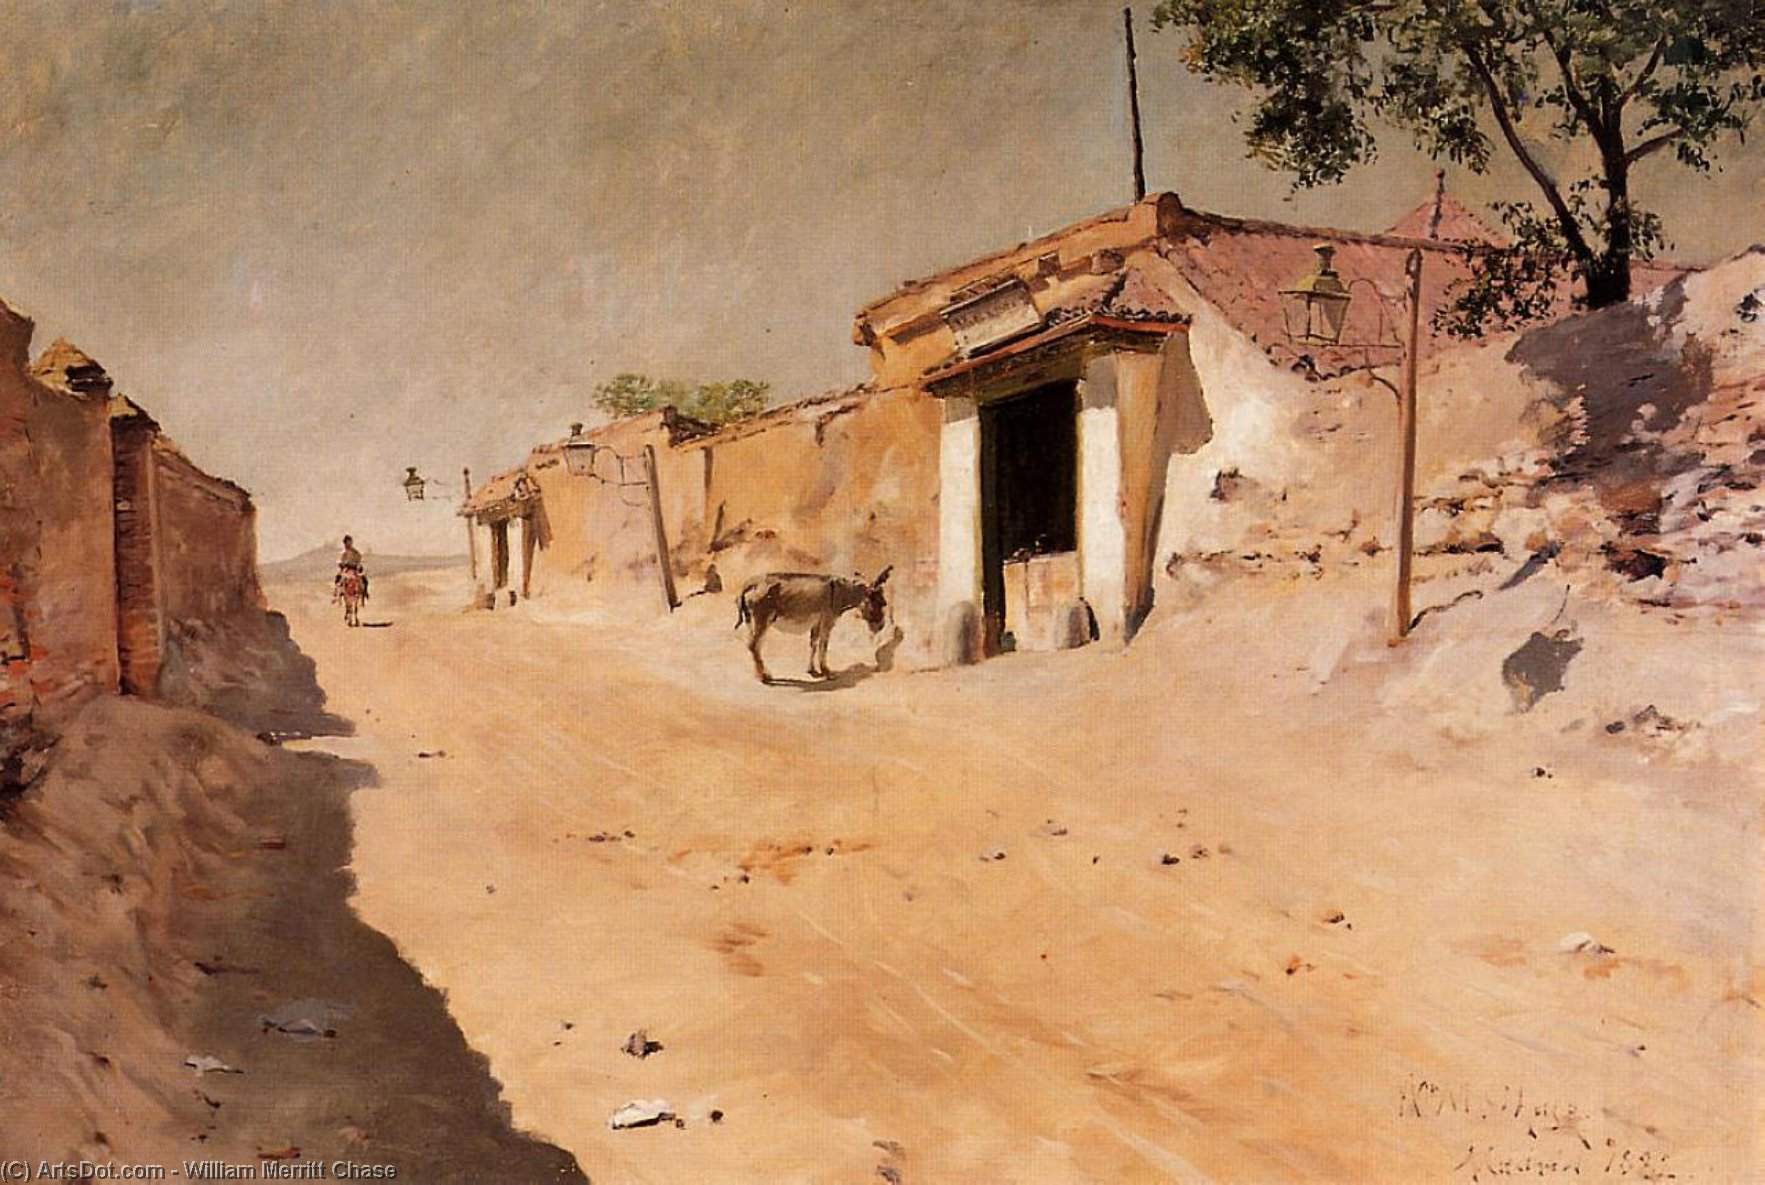 spagnolo villaggio, olio su tela di William Merritt Chase (1849-1916, United States)